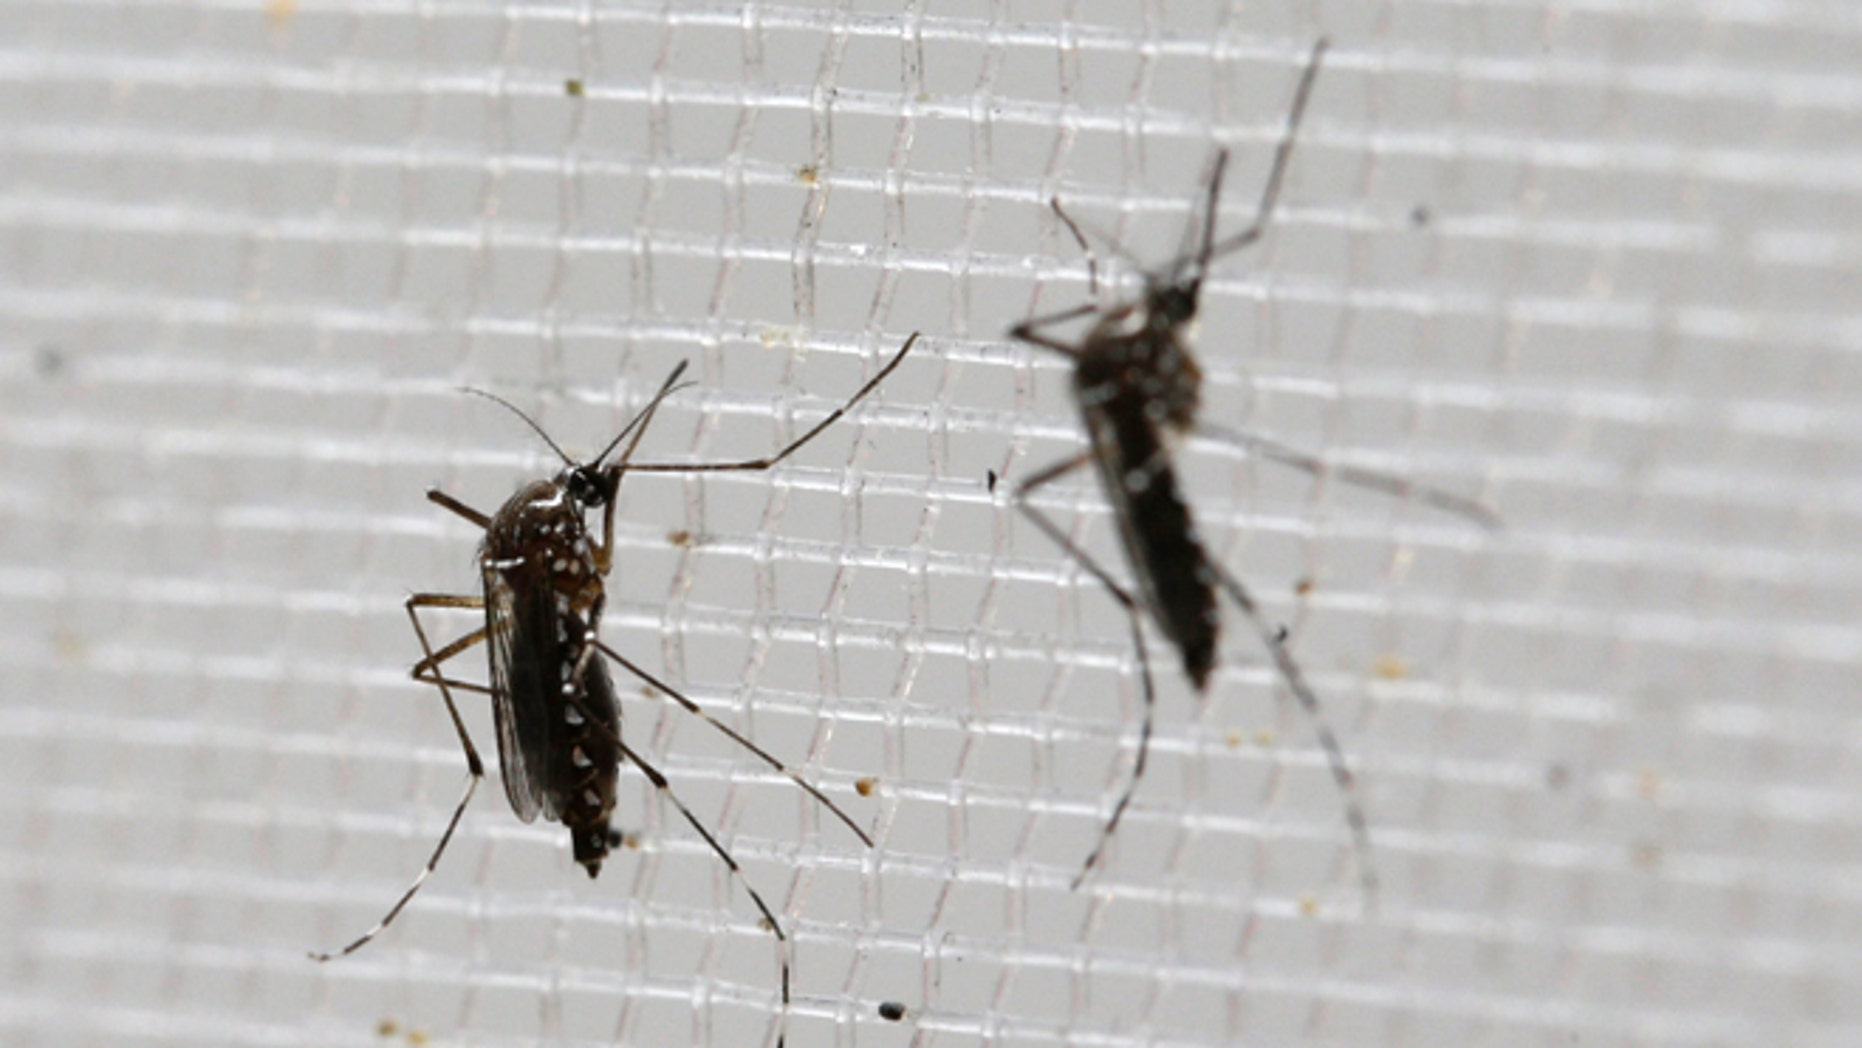 Aedes aegypti mosquitoes at the Gorgas Memorial Laboratory in Panama City.